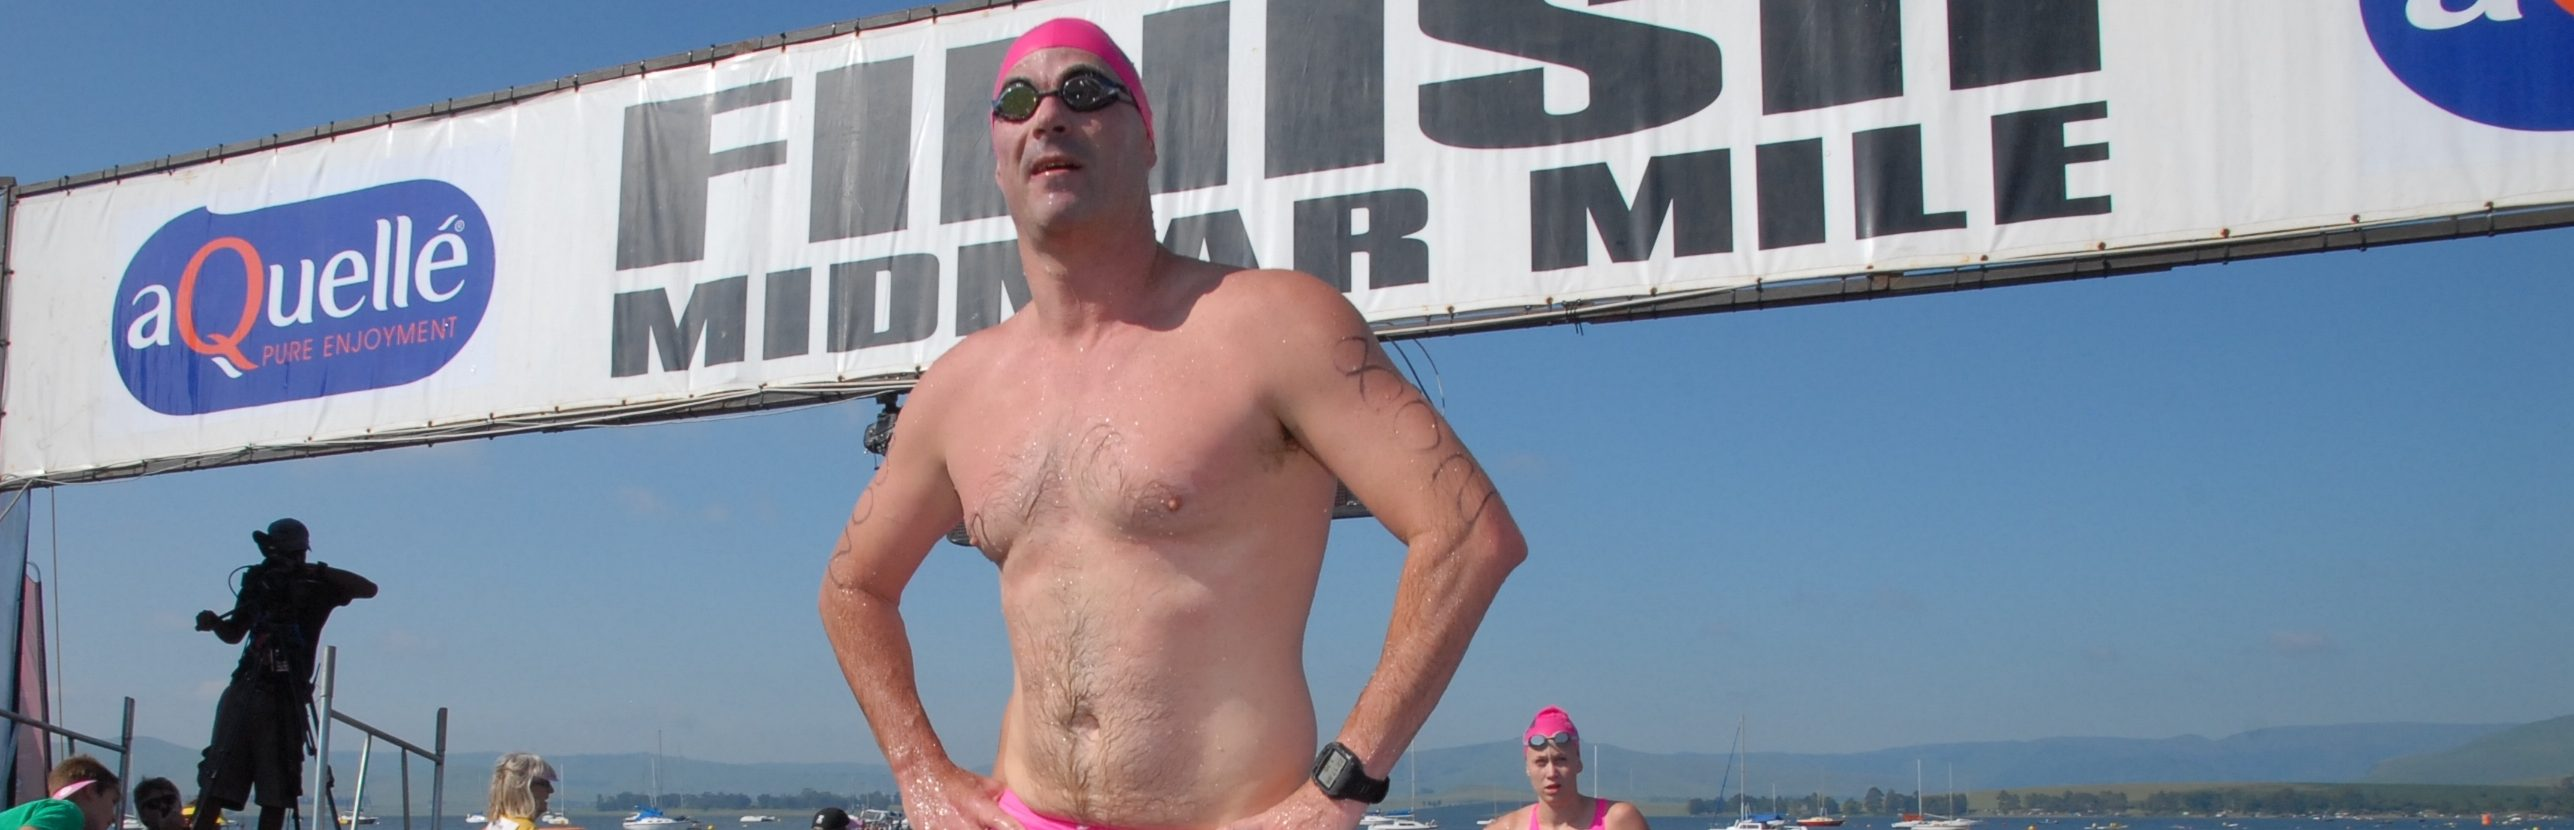 Midmar Mile swimmers to raise R3m for SA charities